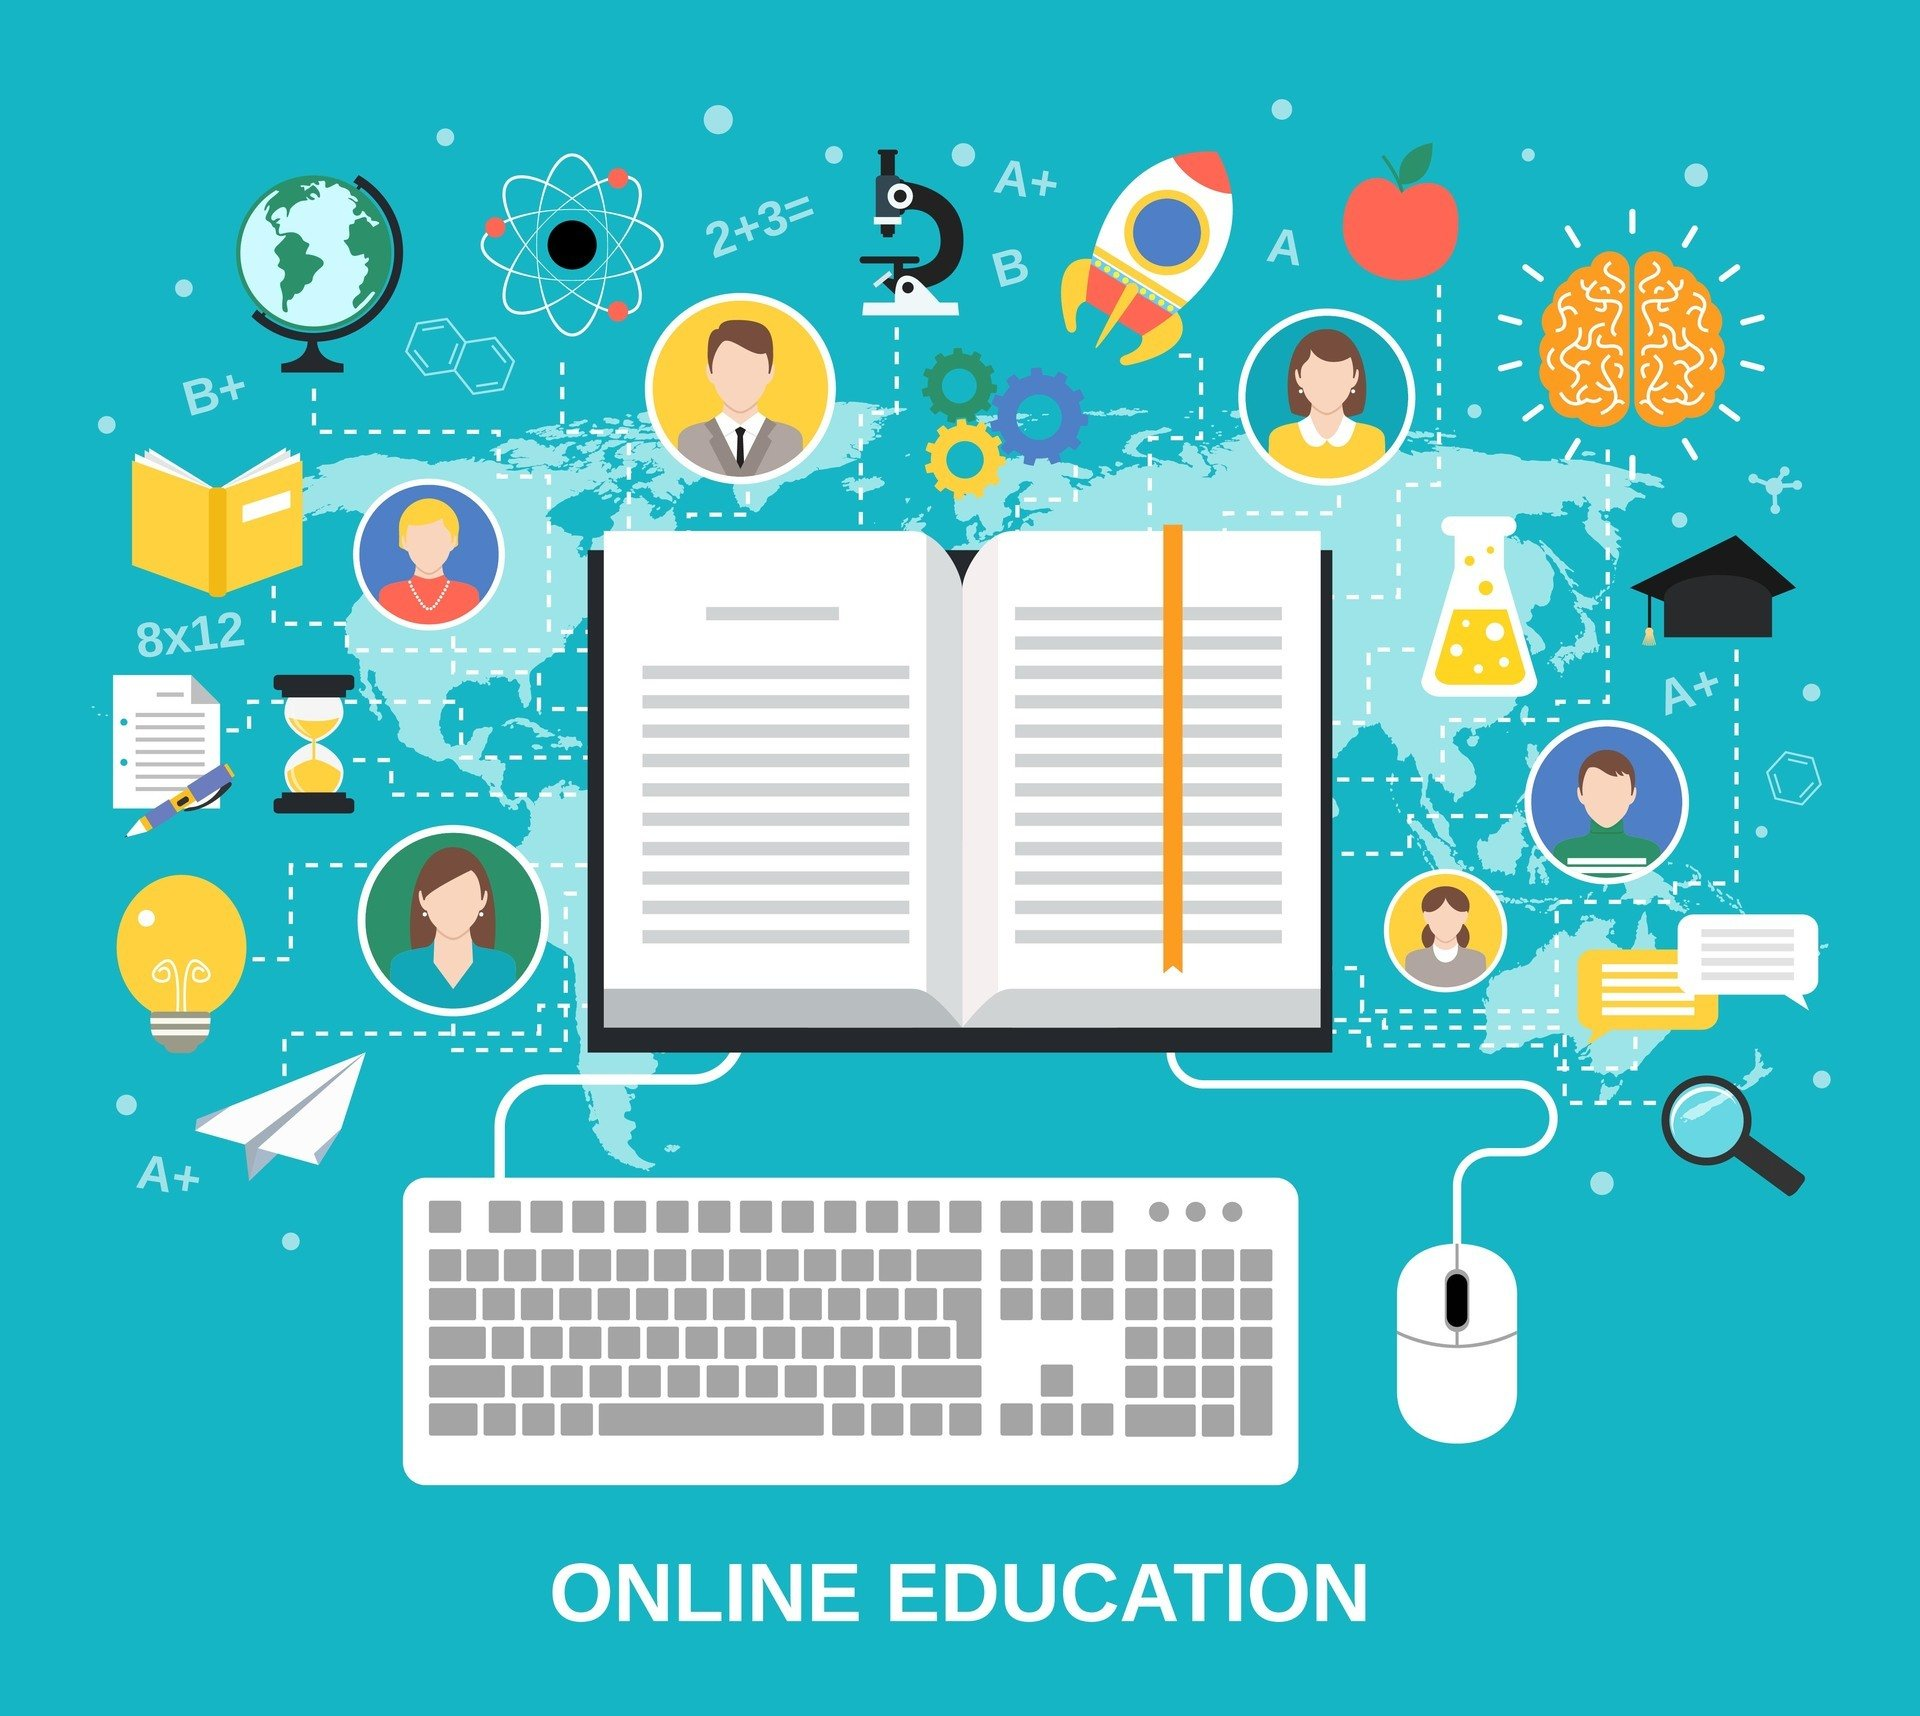 7 Tools to Build Up Your School's Online Potential